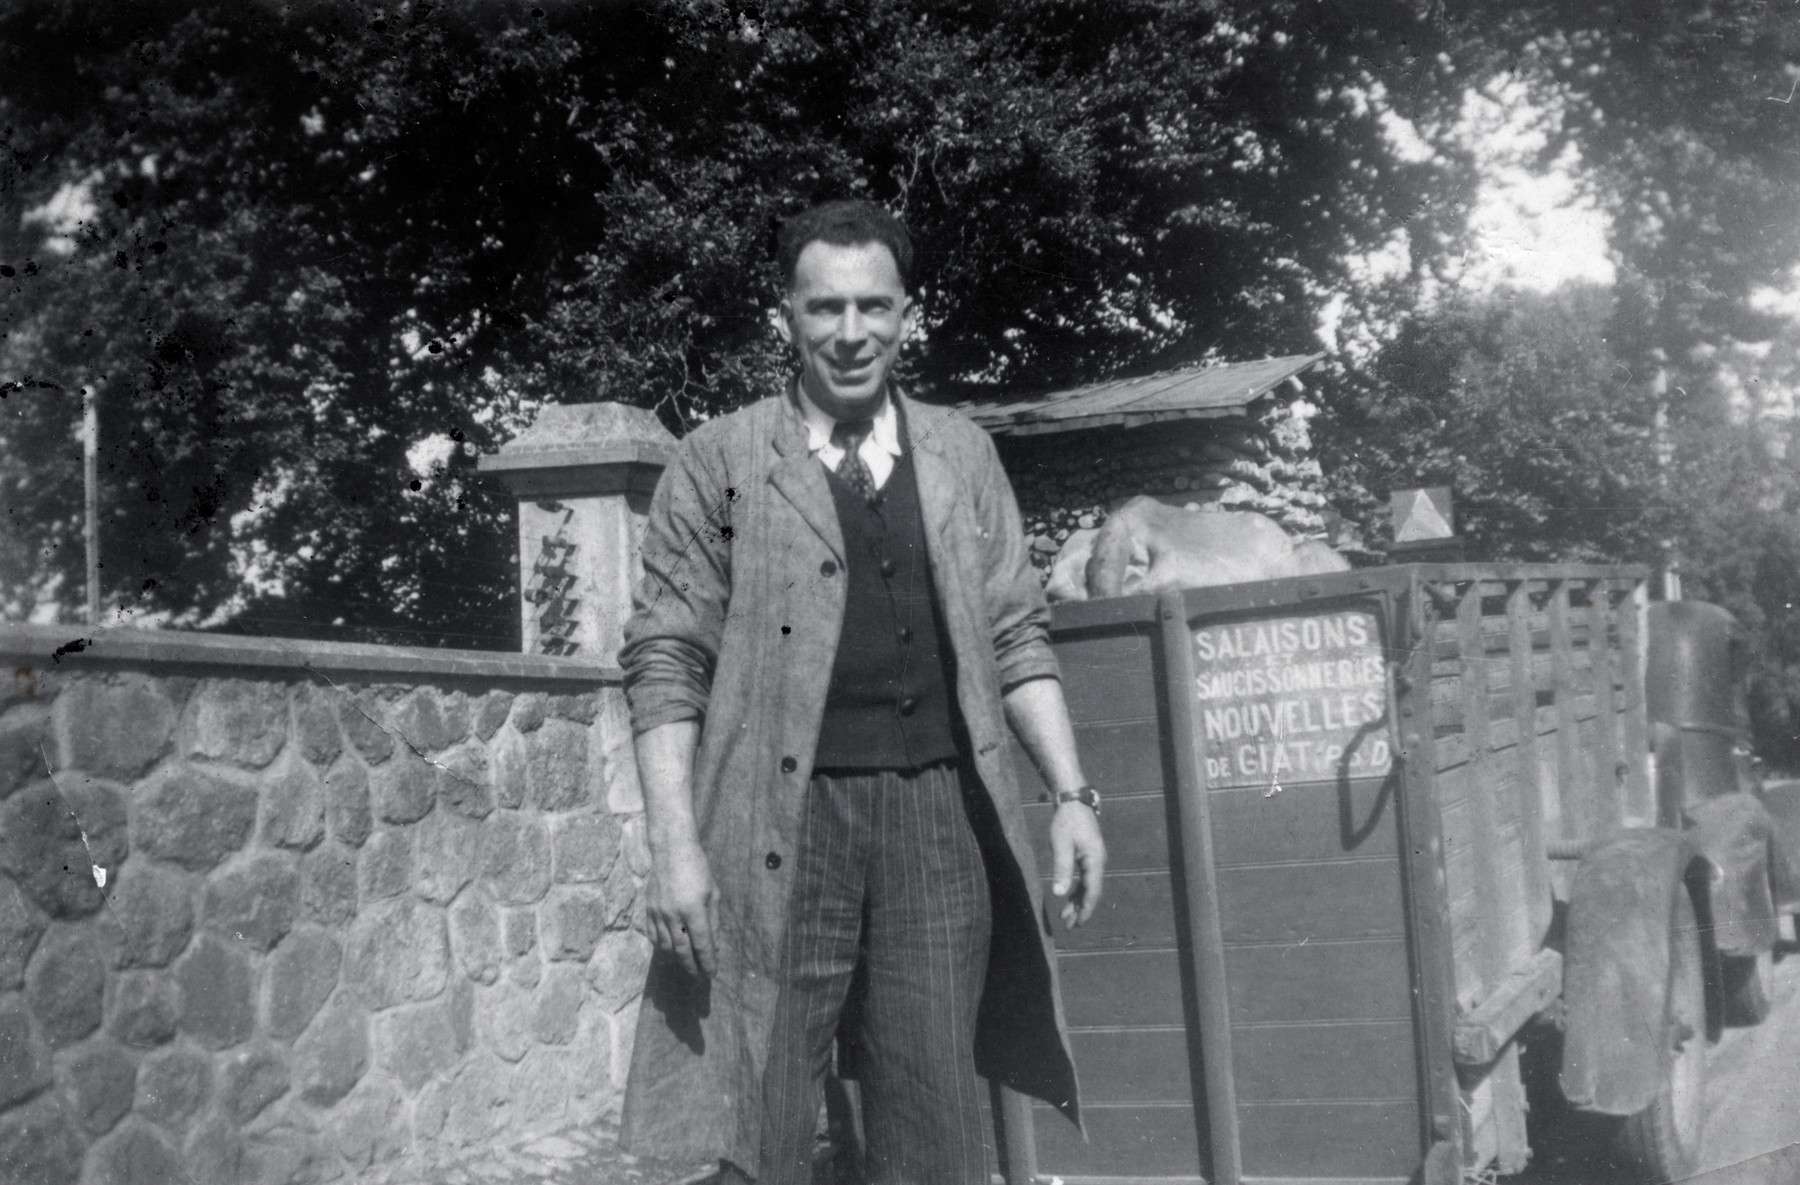 Marcel Michel stands next to the truck for his sausage factory, Salaisons.